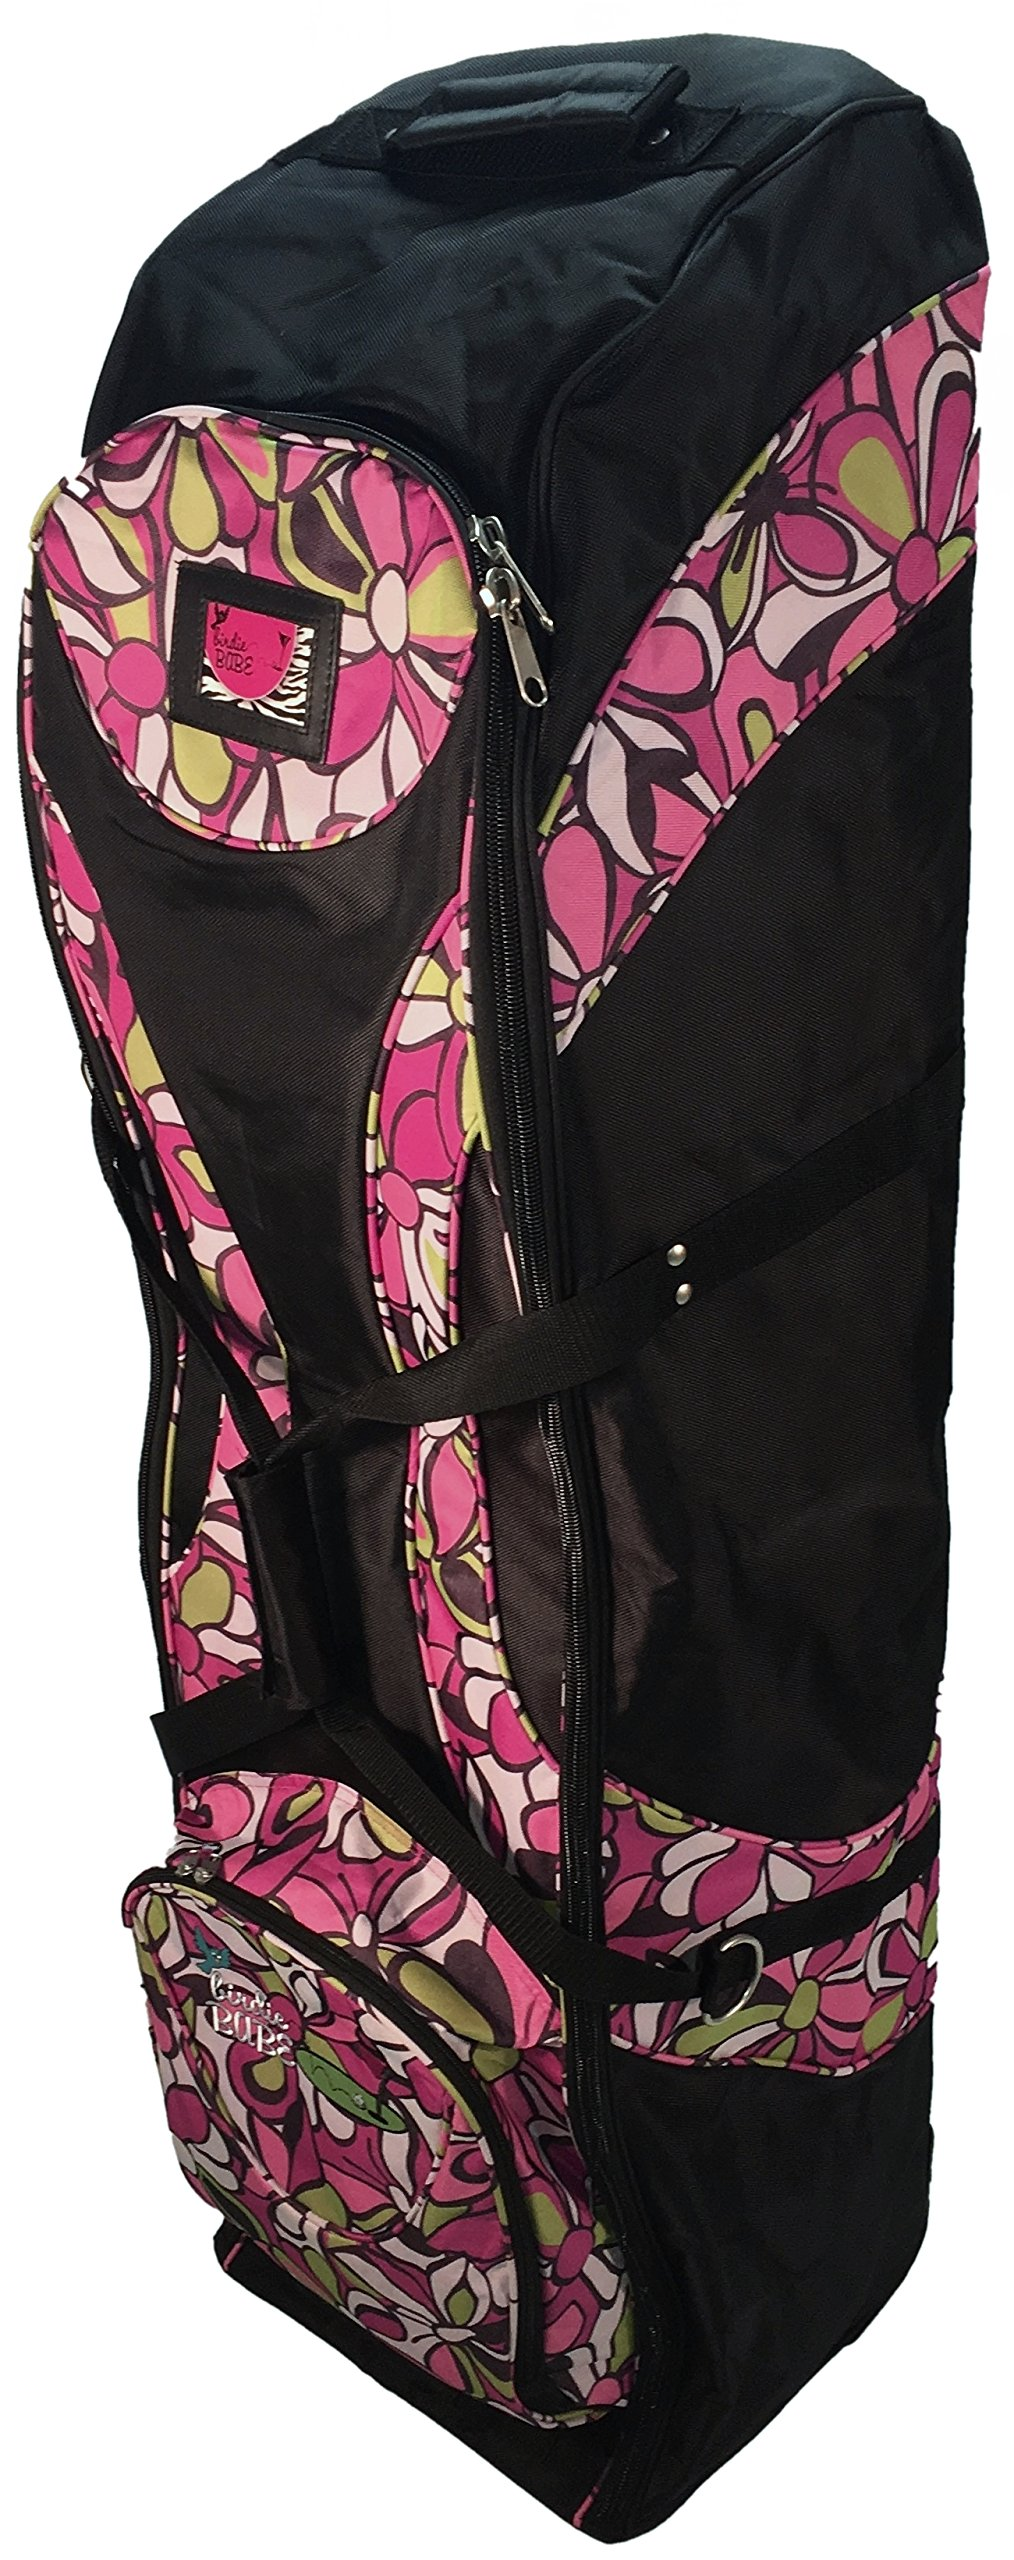 Birdie Babe Ladies Golf Club Bag Travel Cover Pink Flowered by Birdie Babe